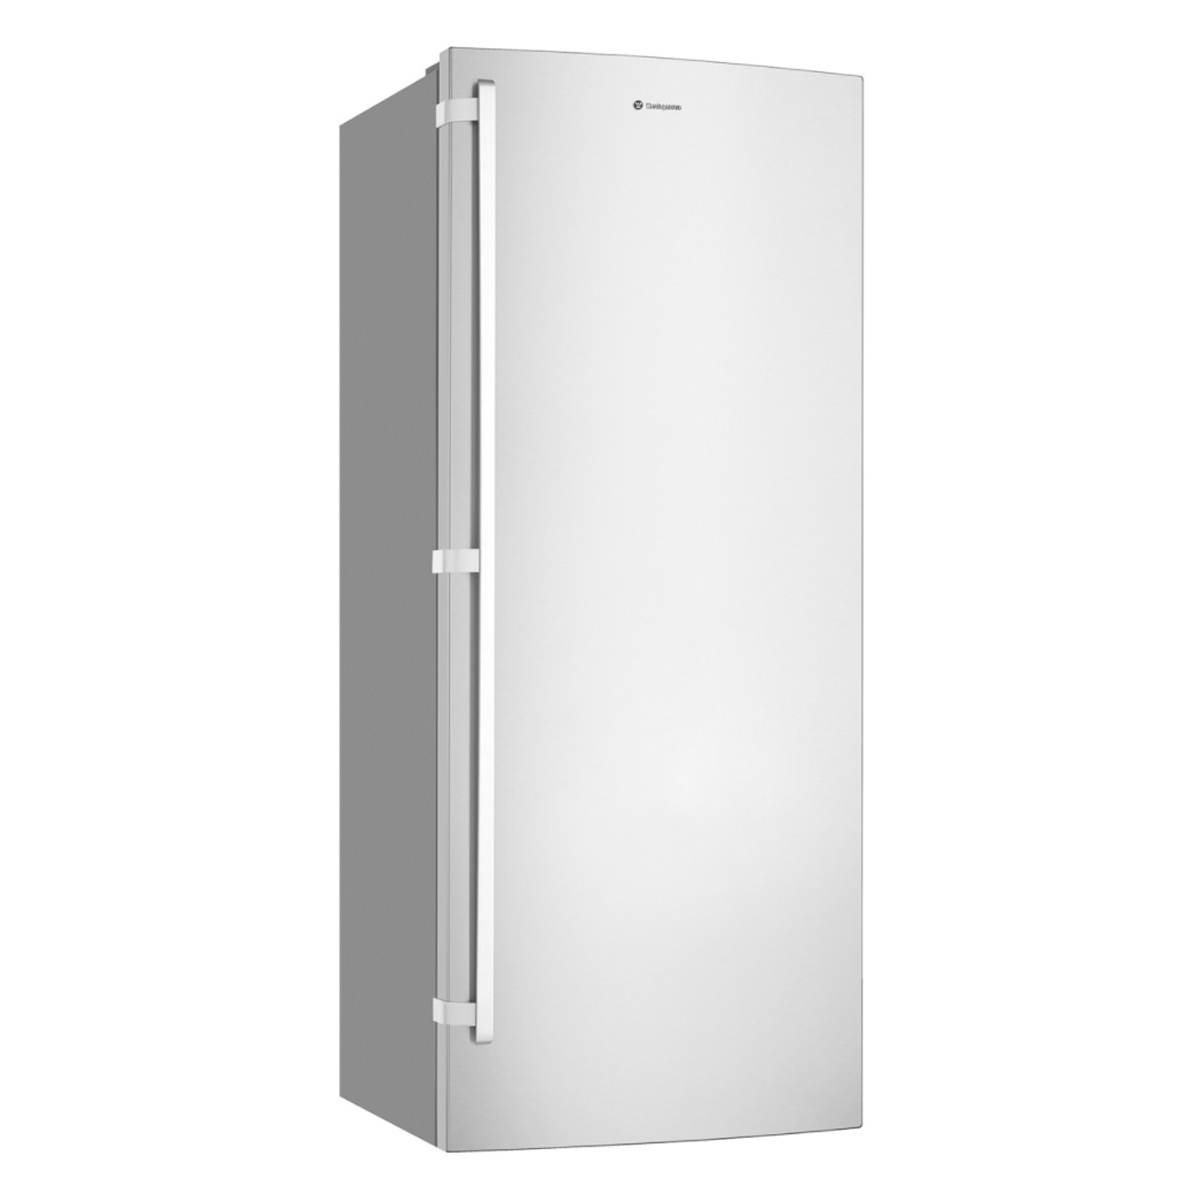 Westinghouse WRB5004SA 500L Upright Fridge